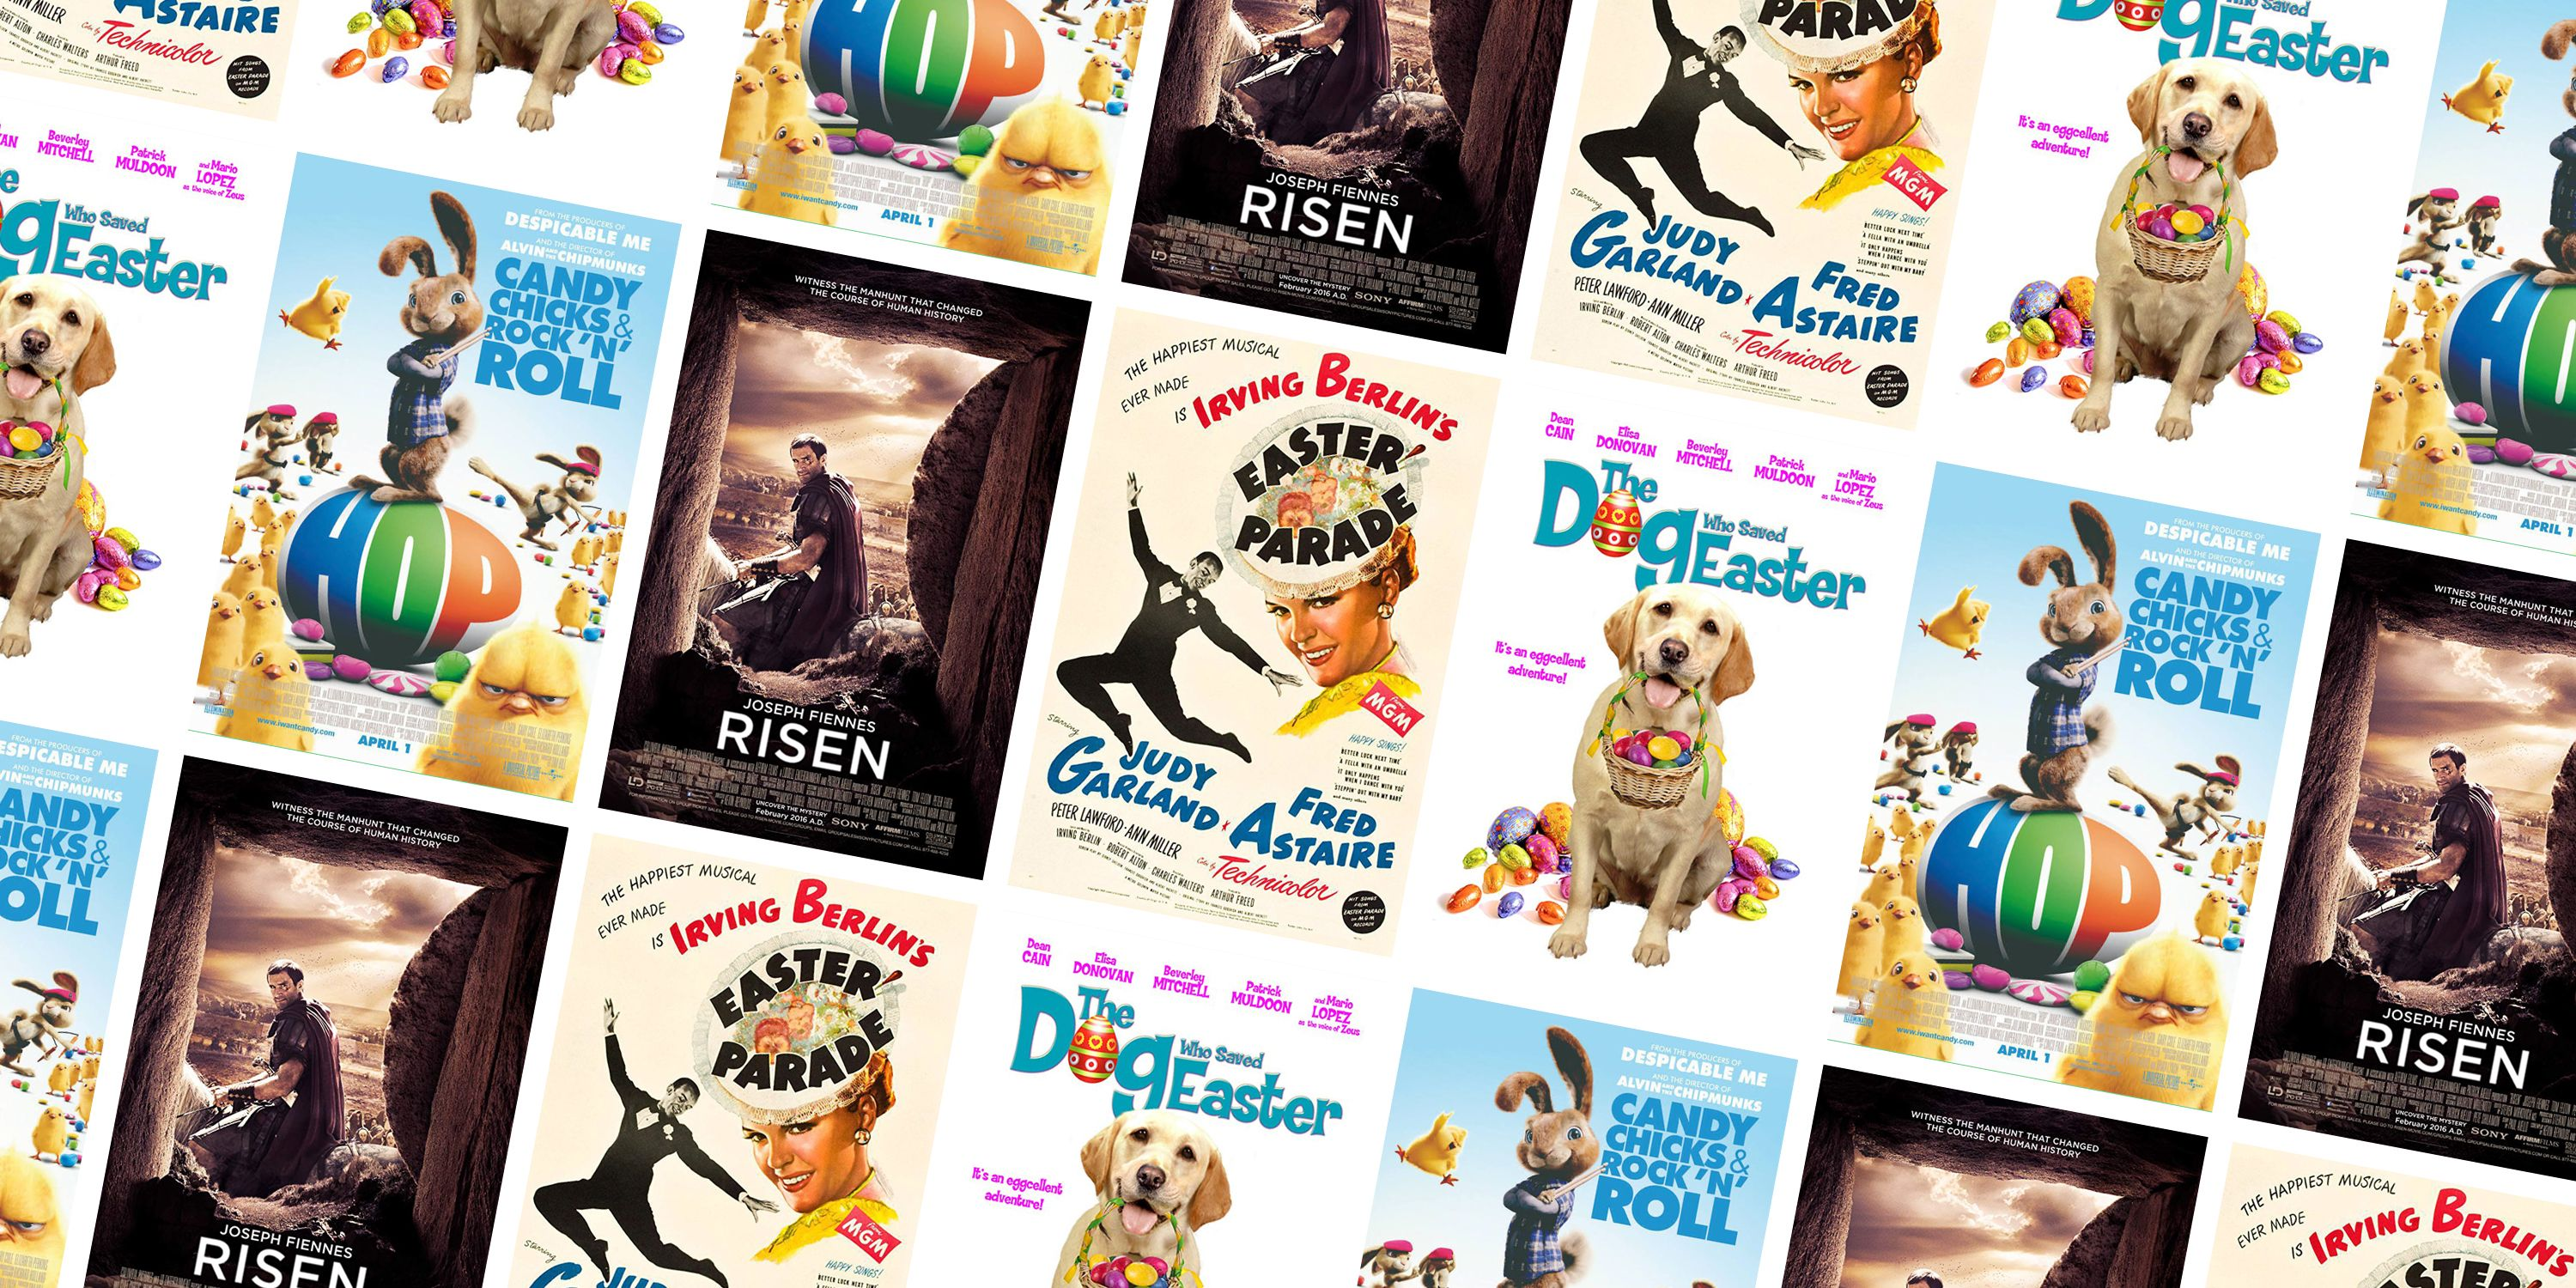 15 Best Easter Movies For 2019 Top Easter Films For Kids Families